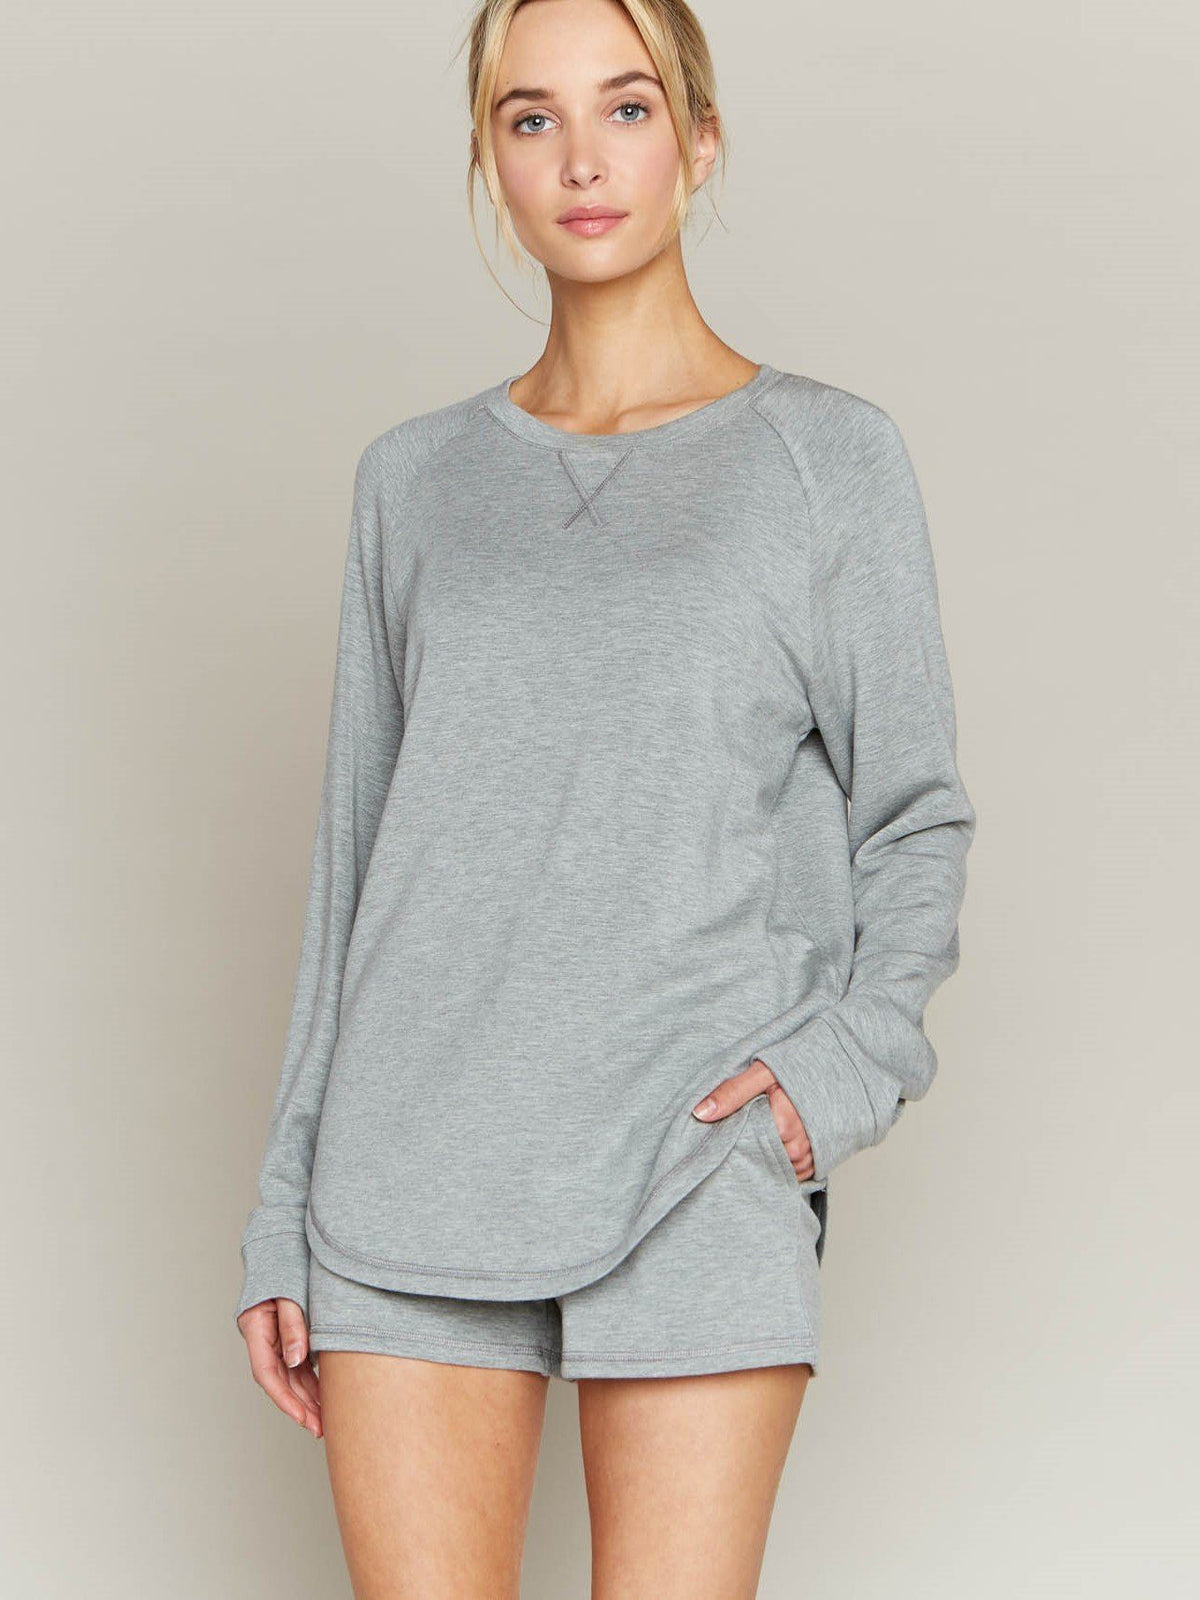 Feel at Home Sweatshirt Unclassified Thread&Supply Ht. Grey S